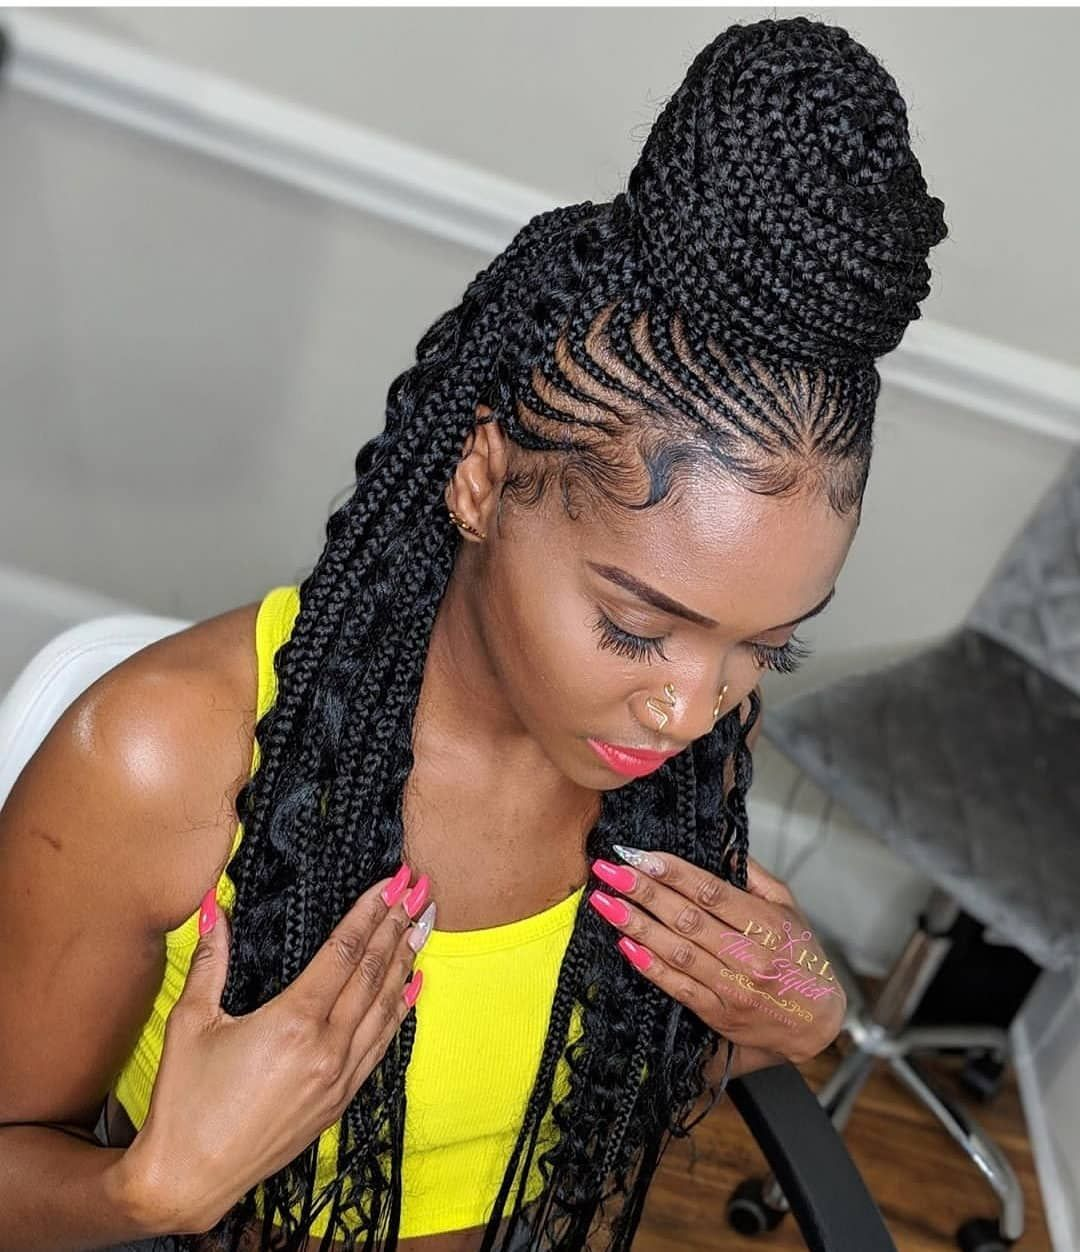 30 African Hair Braiding Styles Pictures That Will Be Awesome For Your Hairdo African Hair Braiding Styles Cornrow Braid Styles African Hairstyles